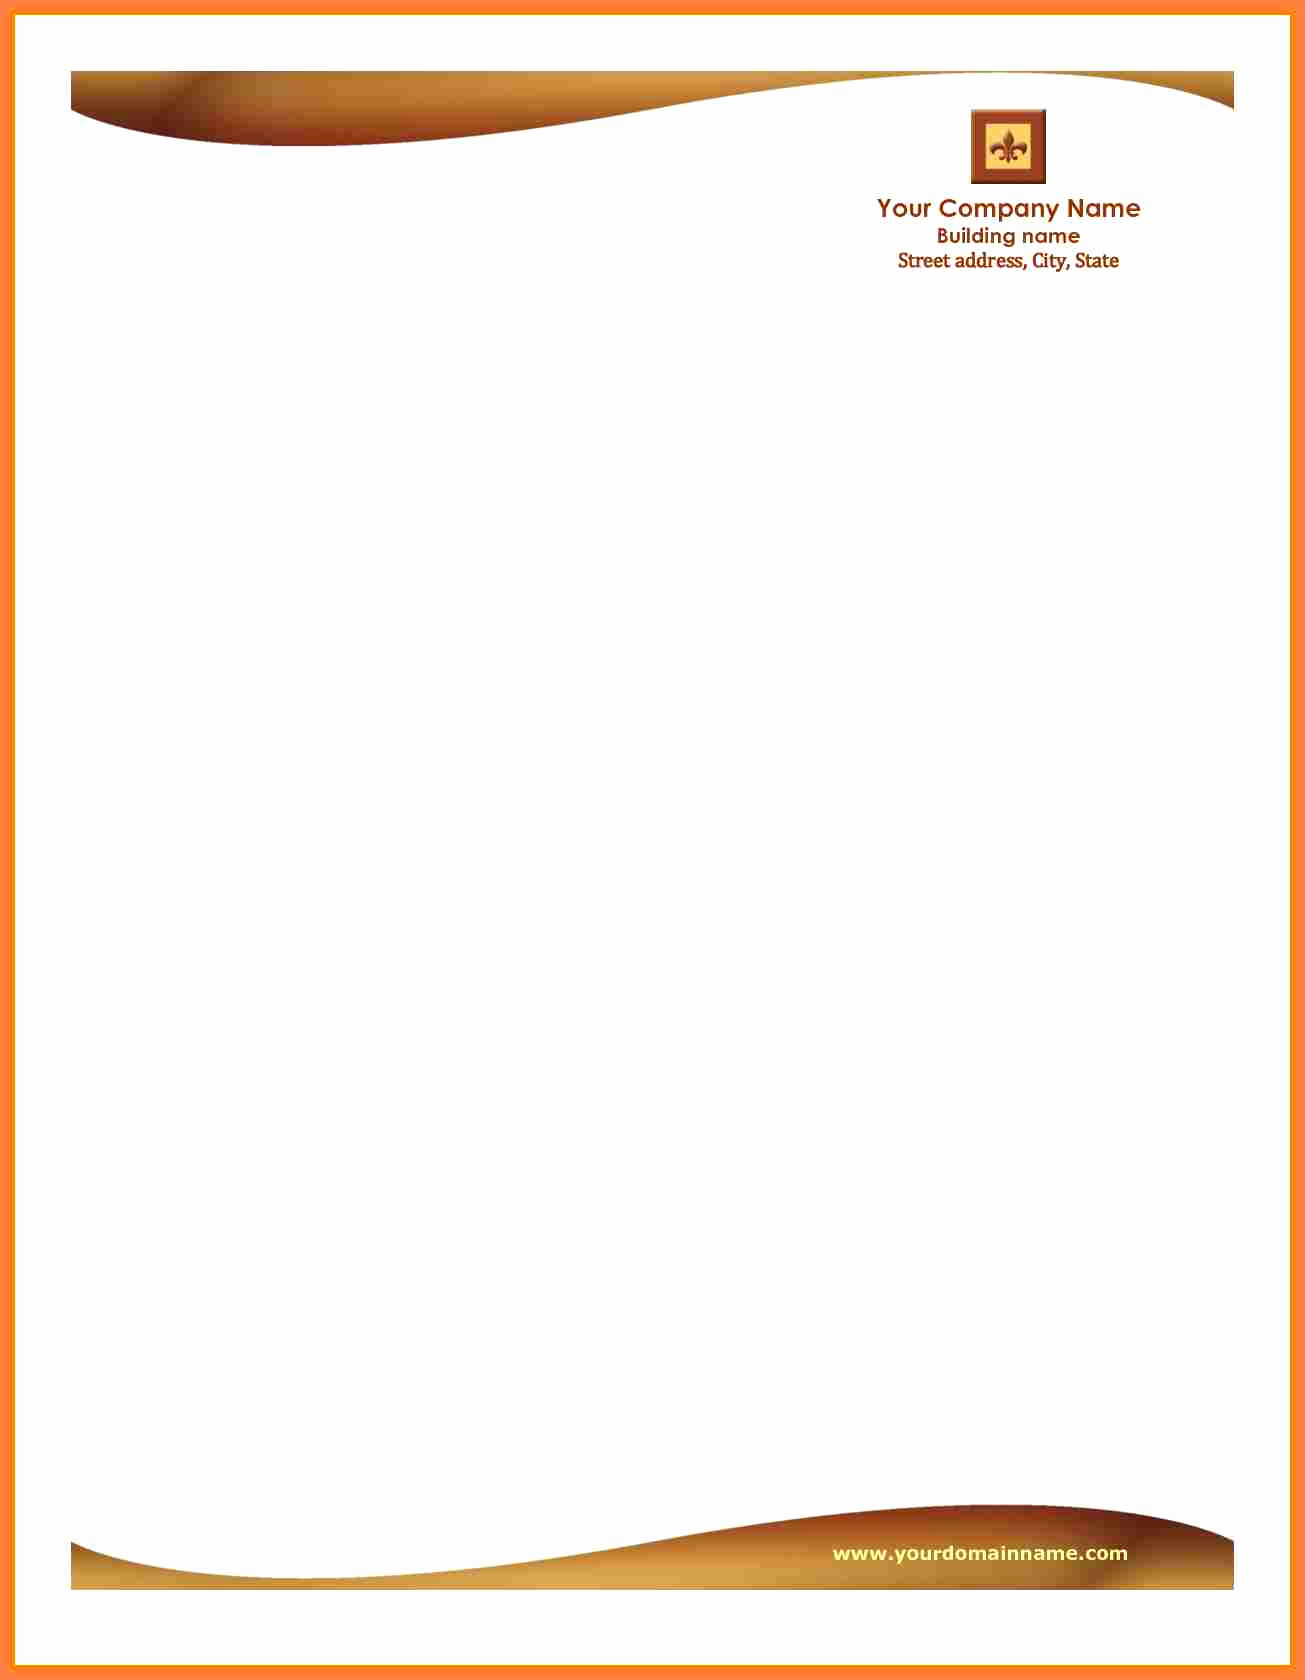 Free Business Letterhead Templates Awesome 5 Letterhead Templates